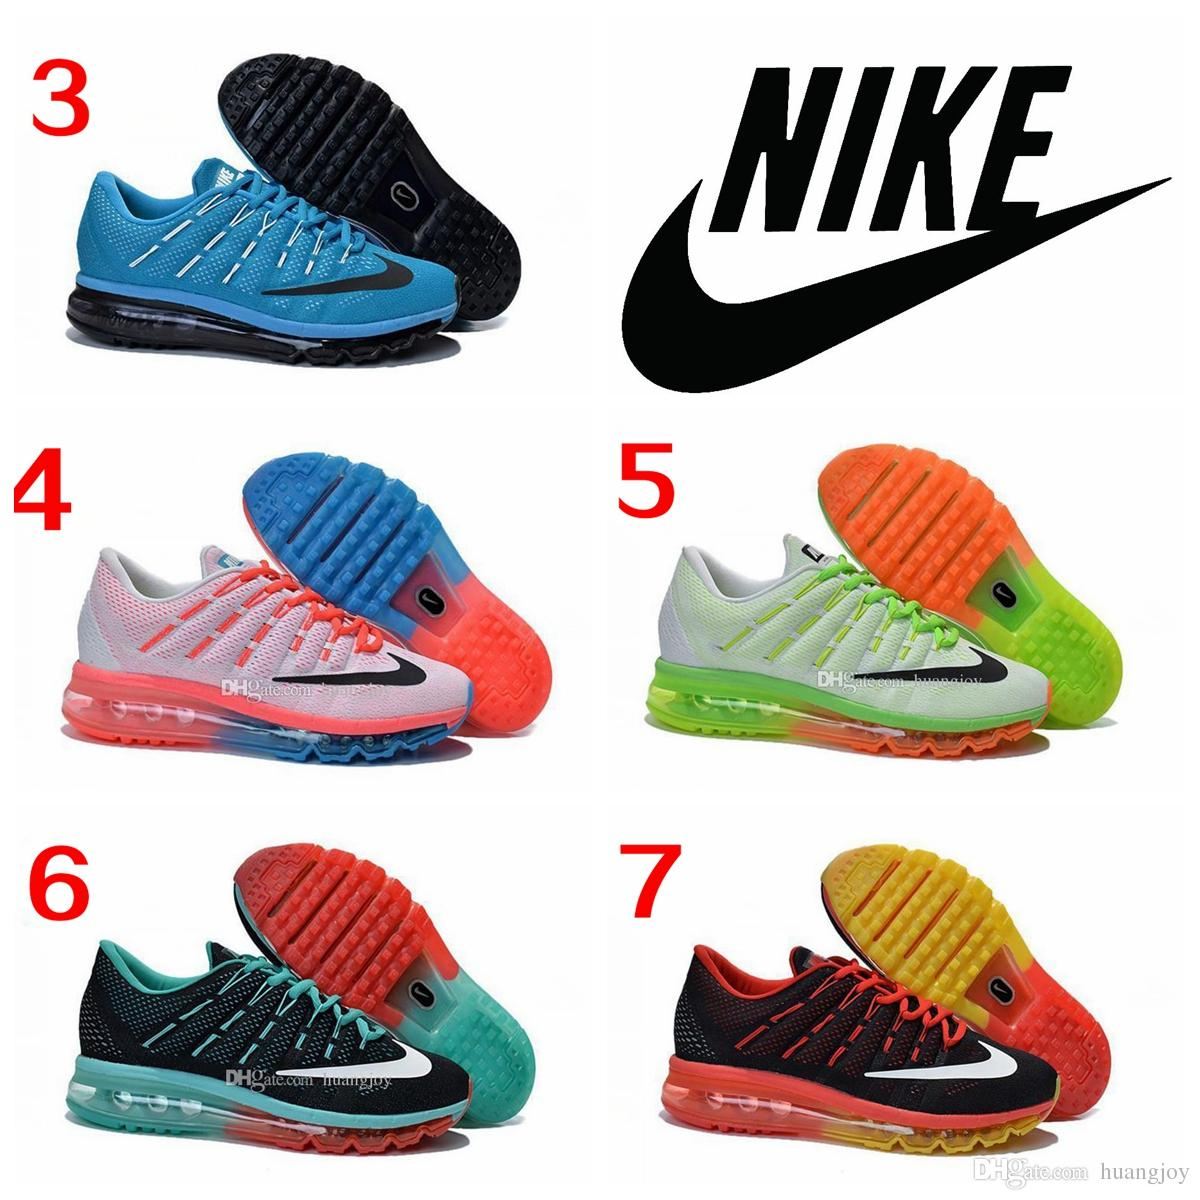 nike air max 2016 colores